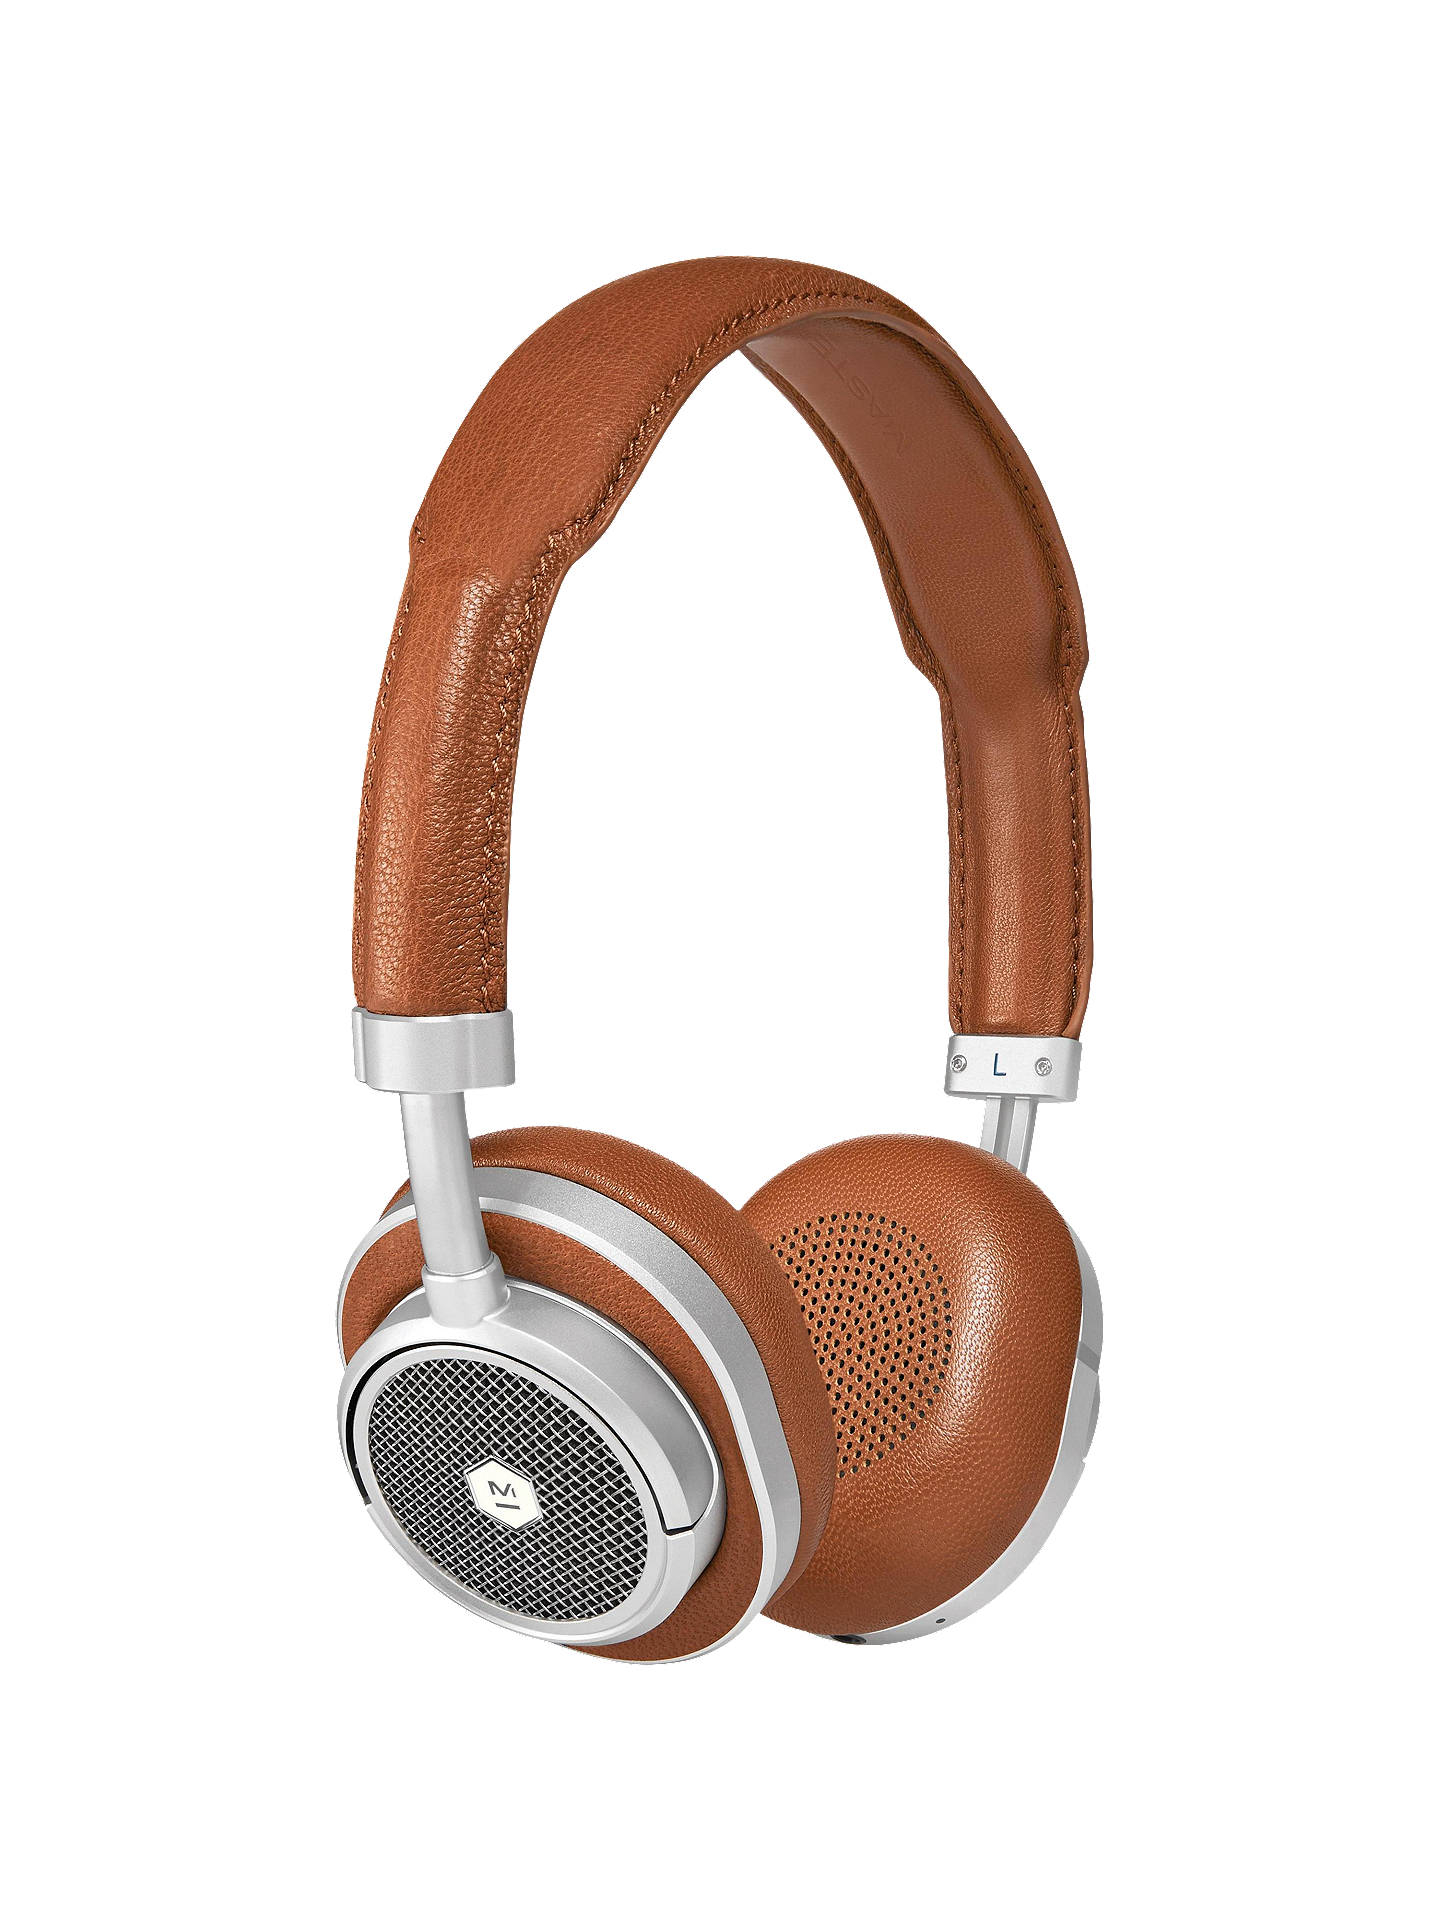 ab1d53fde39 Buy Master & Dynamic MW50+ Wireless Bluetooth On-Ear/Over-Ear Headphones  with ...